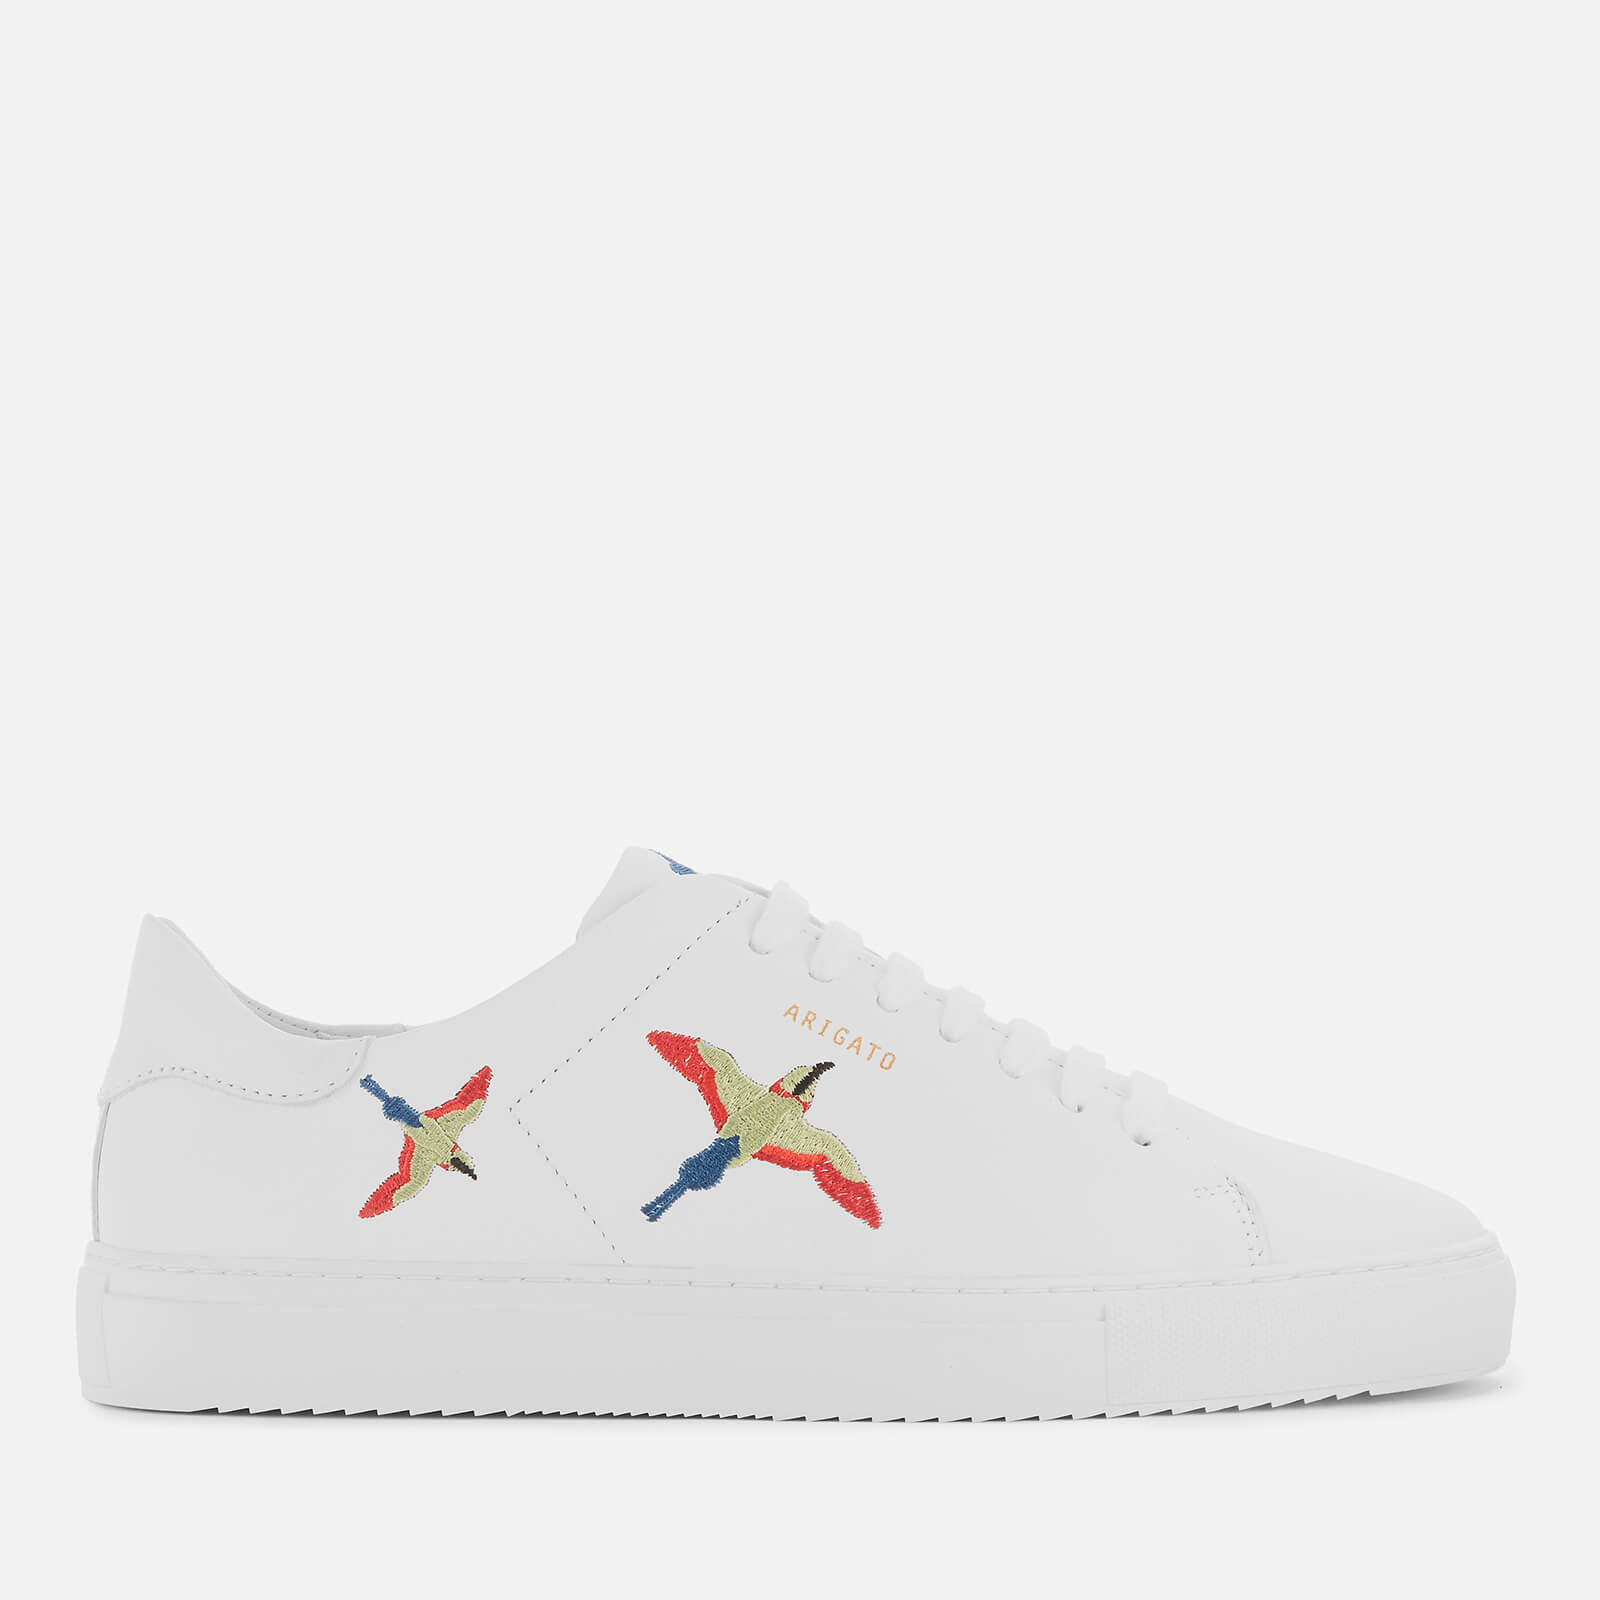 Axel Arigato Men's Clean 90 Bird Leather Cupsole Trainers - White - UK 8